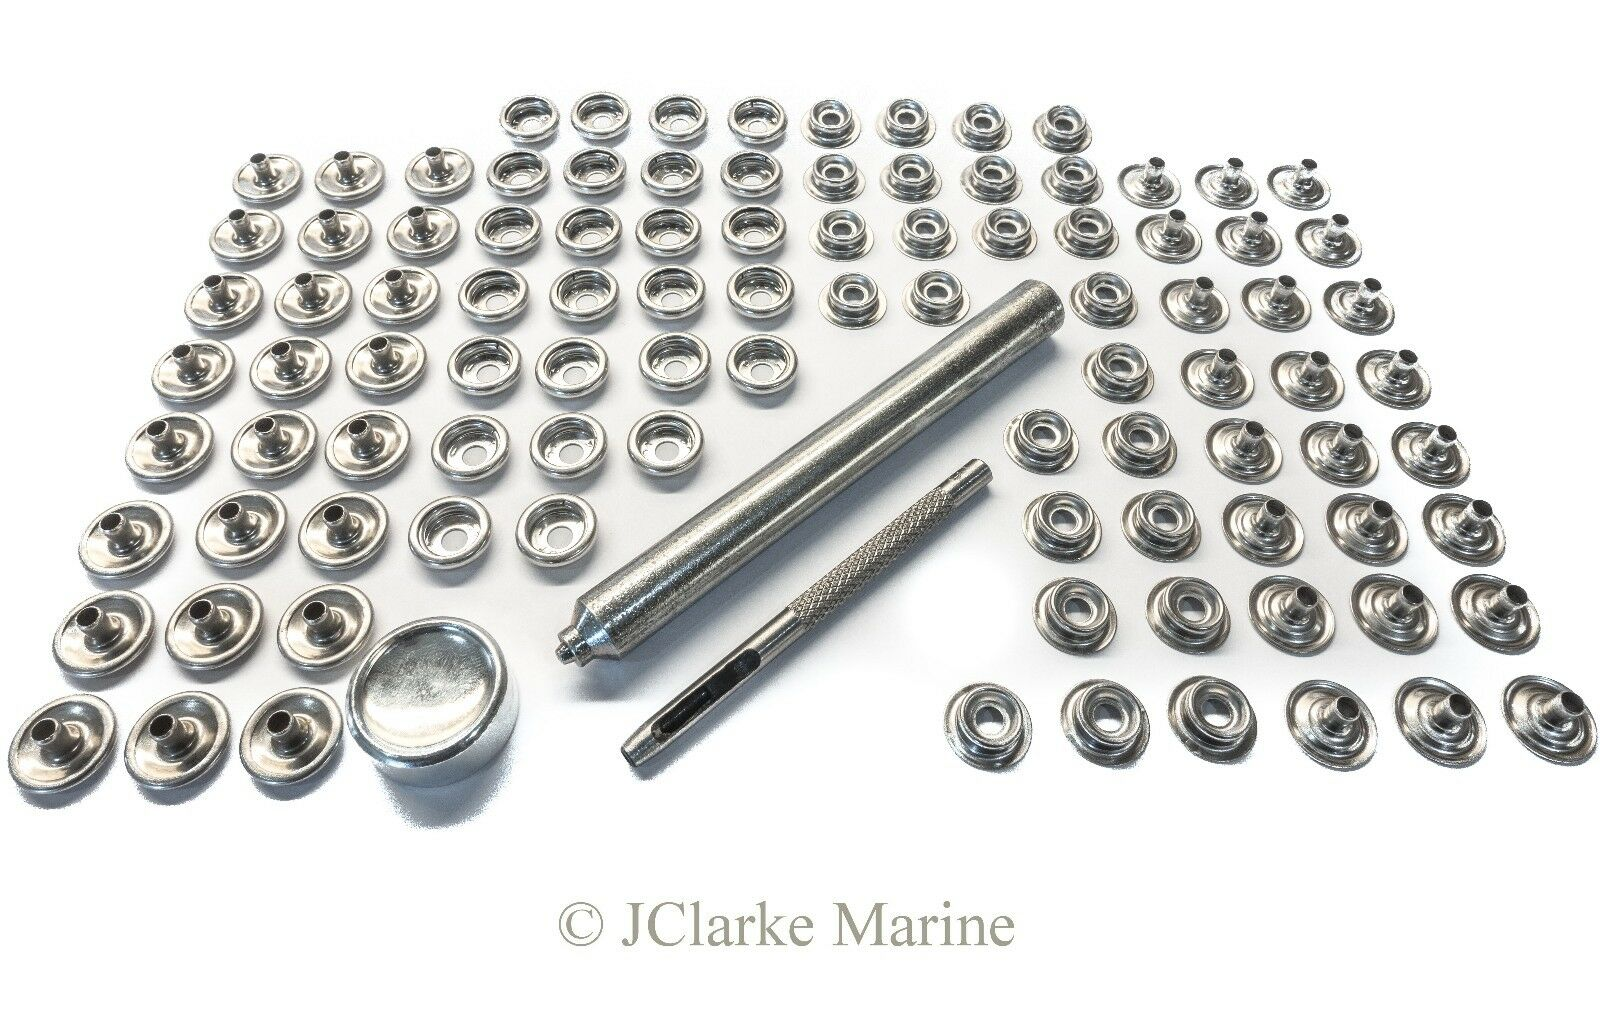 316 Stainless steel snap fastener kit canvas to canvas boat canopy cover bimini